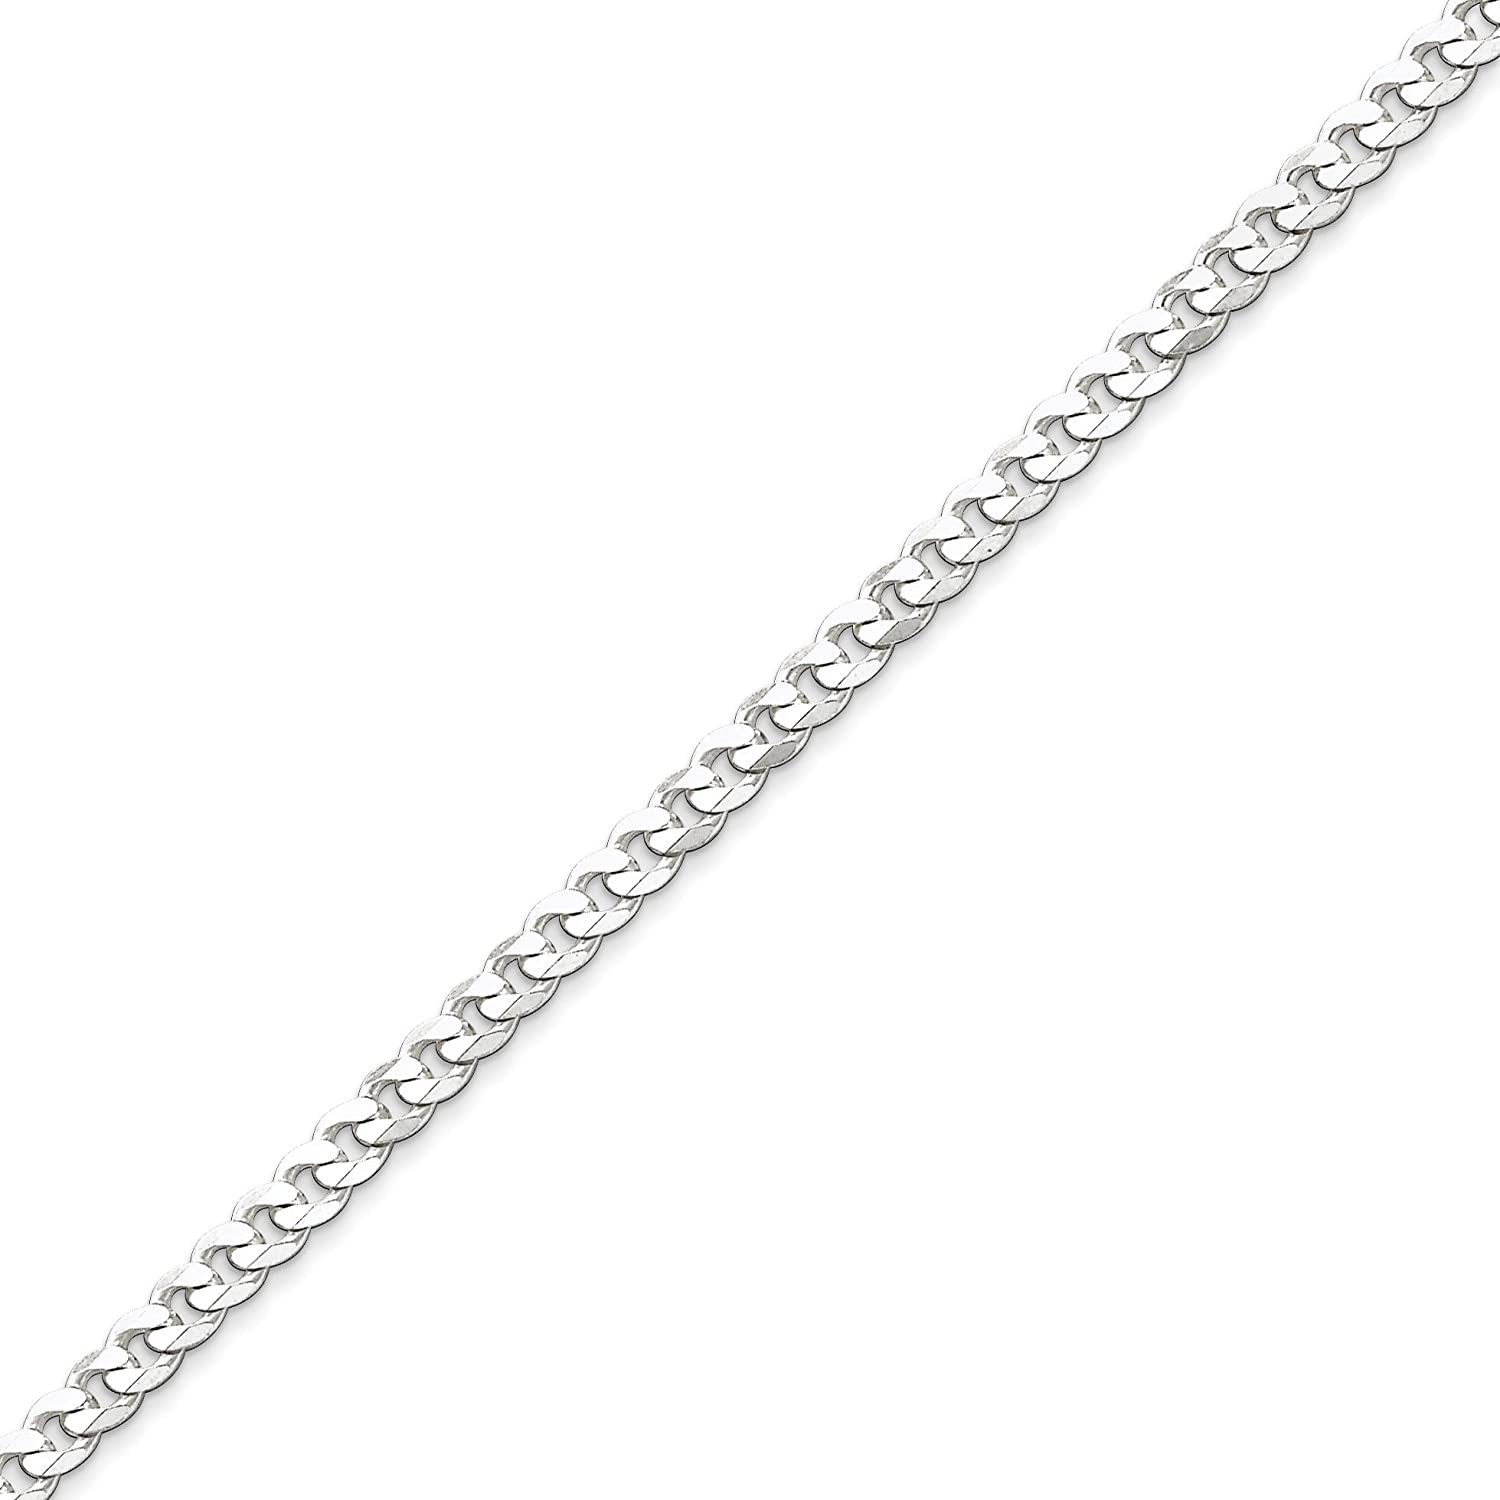 West Coast Jewelry Sterling Silver 4.25mm Curb Chain